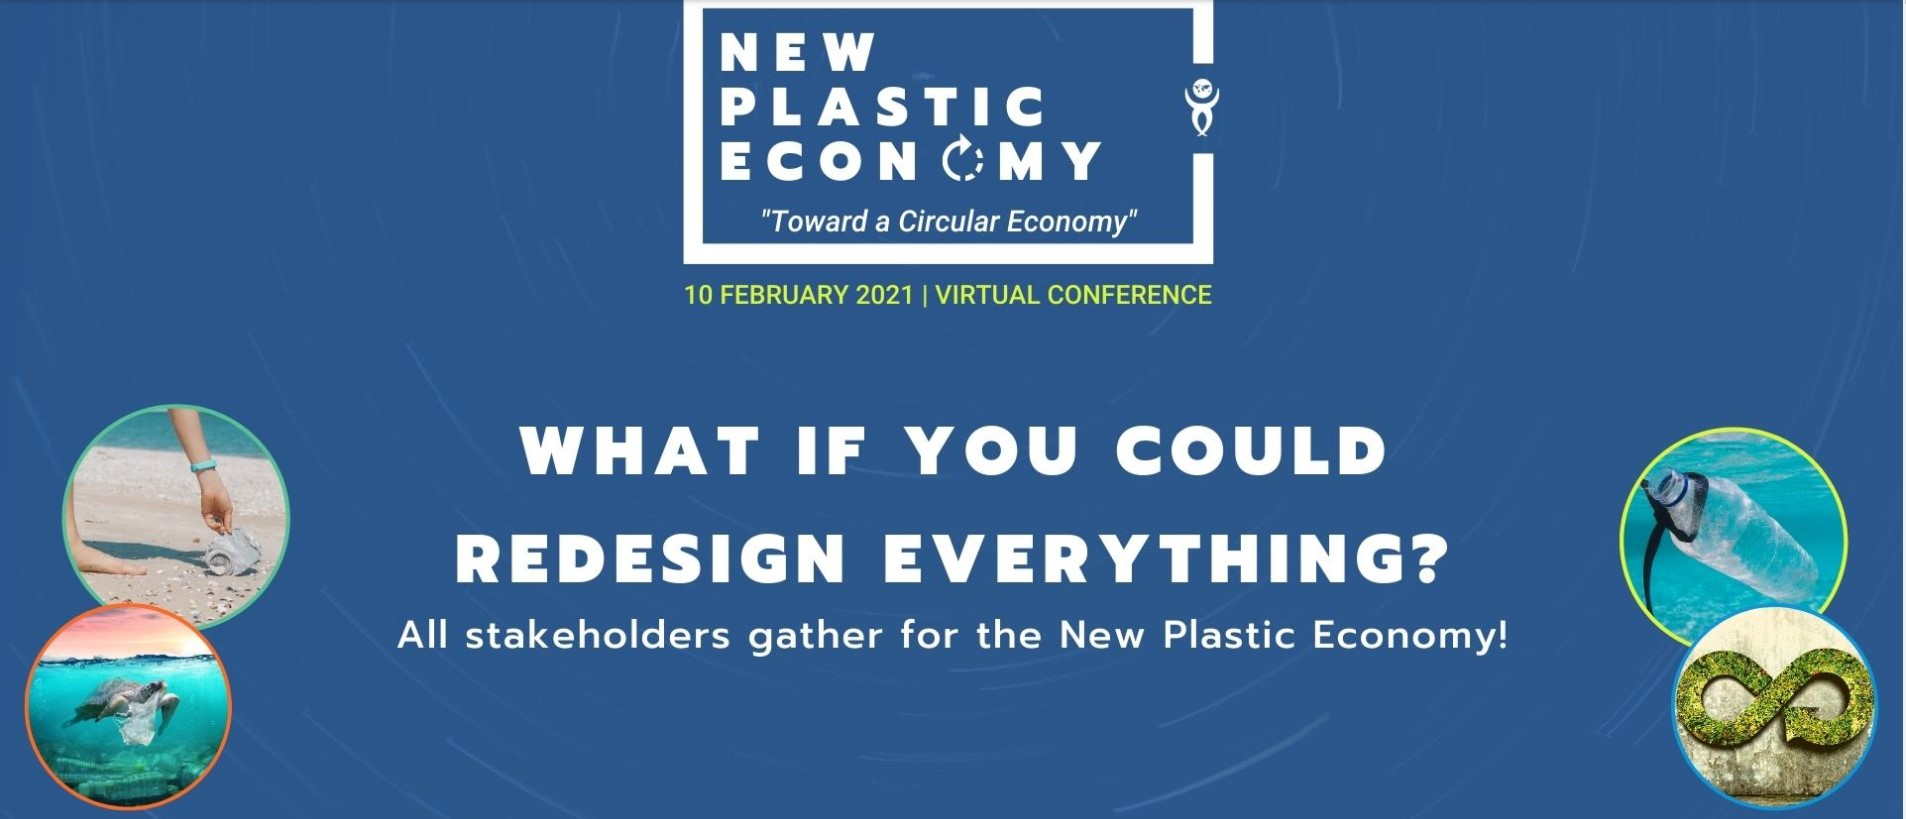 Sirane's MD among keynote speakers at the New Plastic Economy virual conference